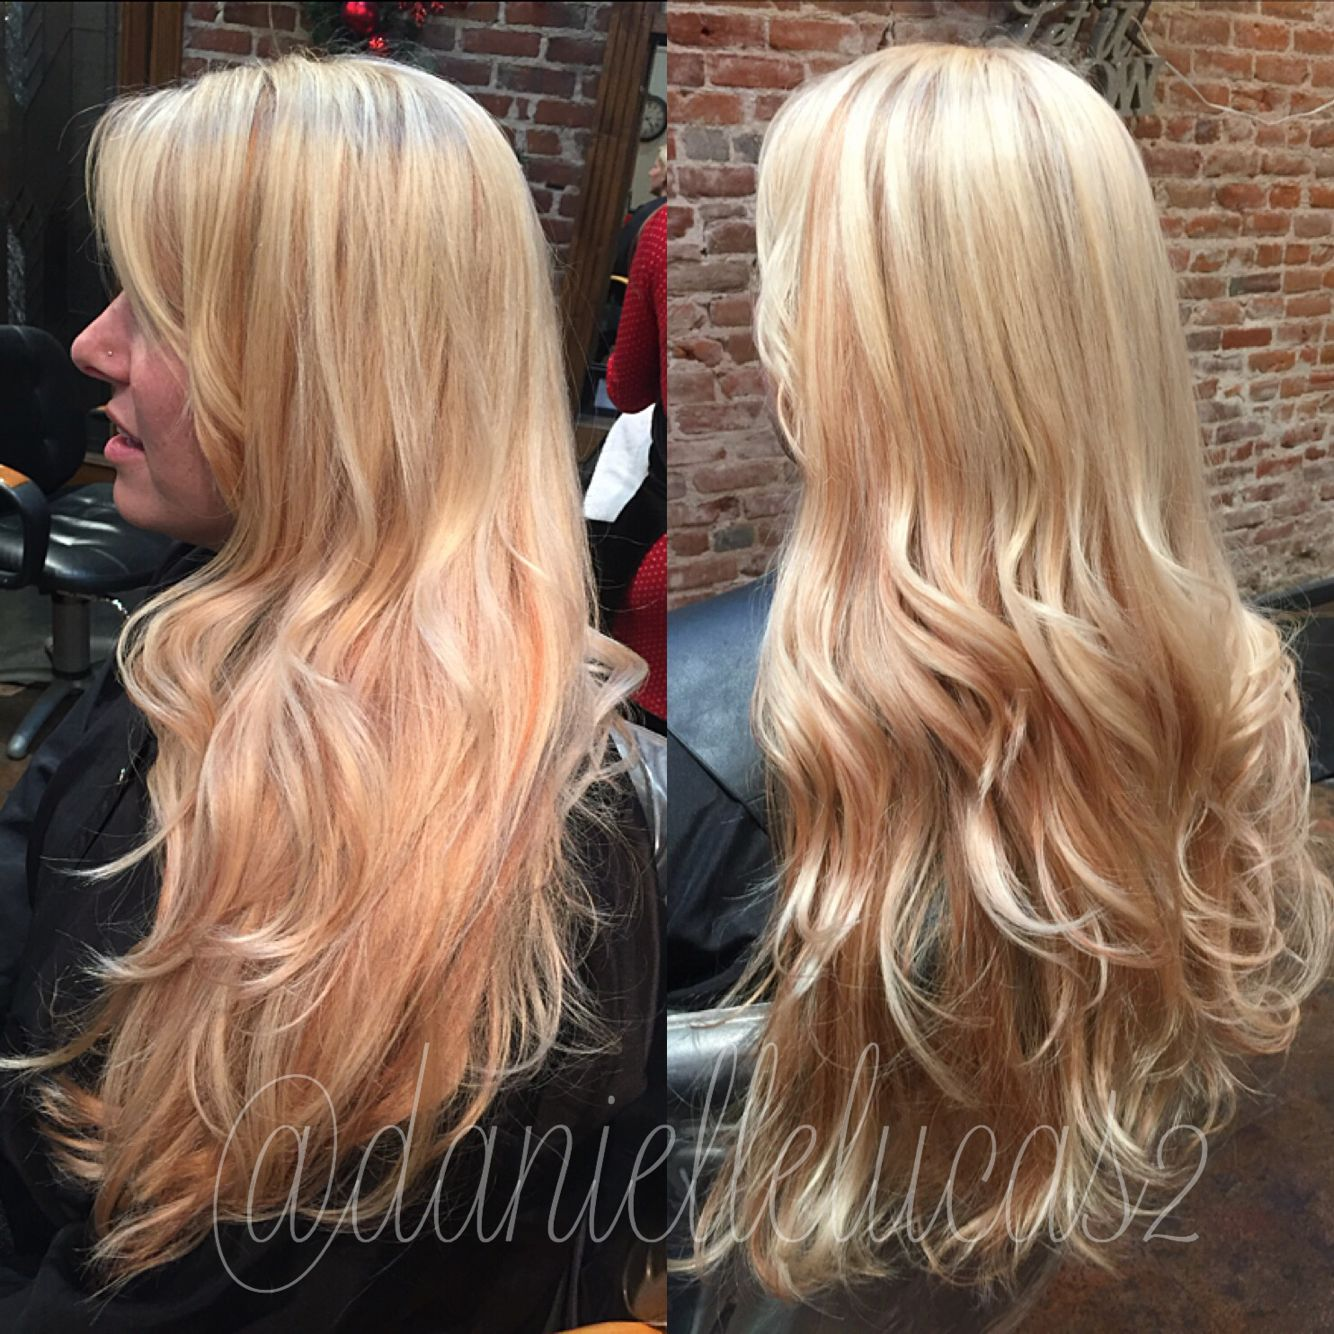 Blonde Highlight And Peach Rose Lowlight Done By Me Hair Hair Inspiration Hair Hacks